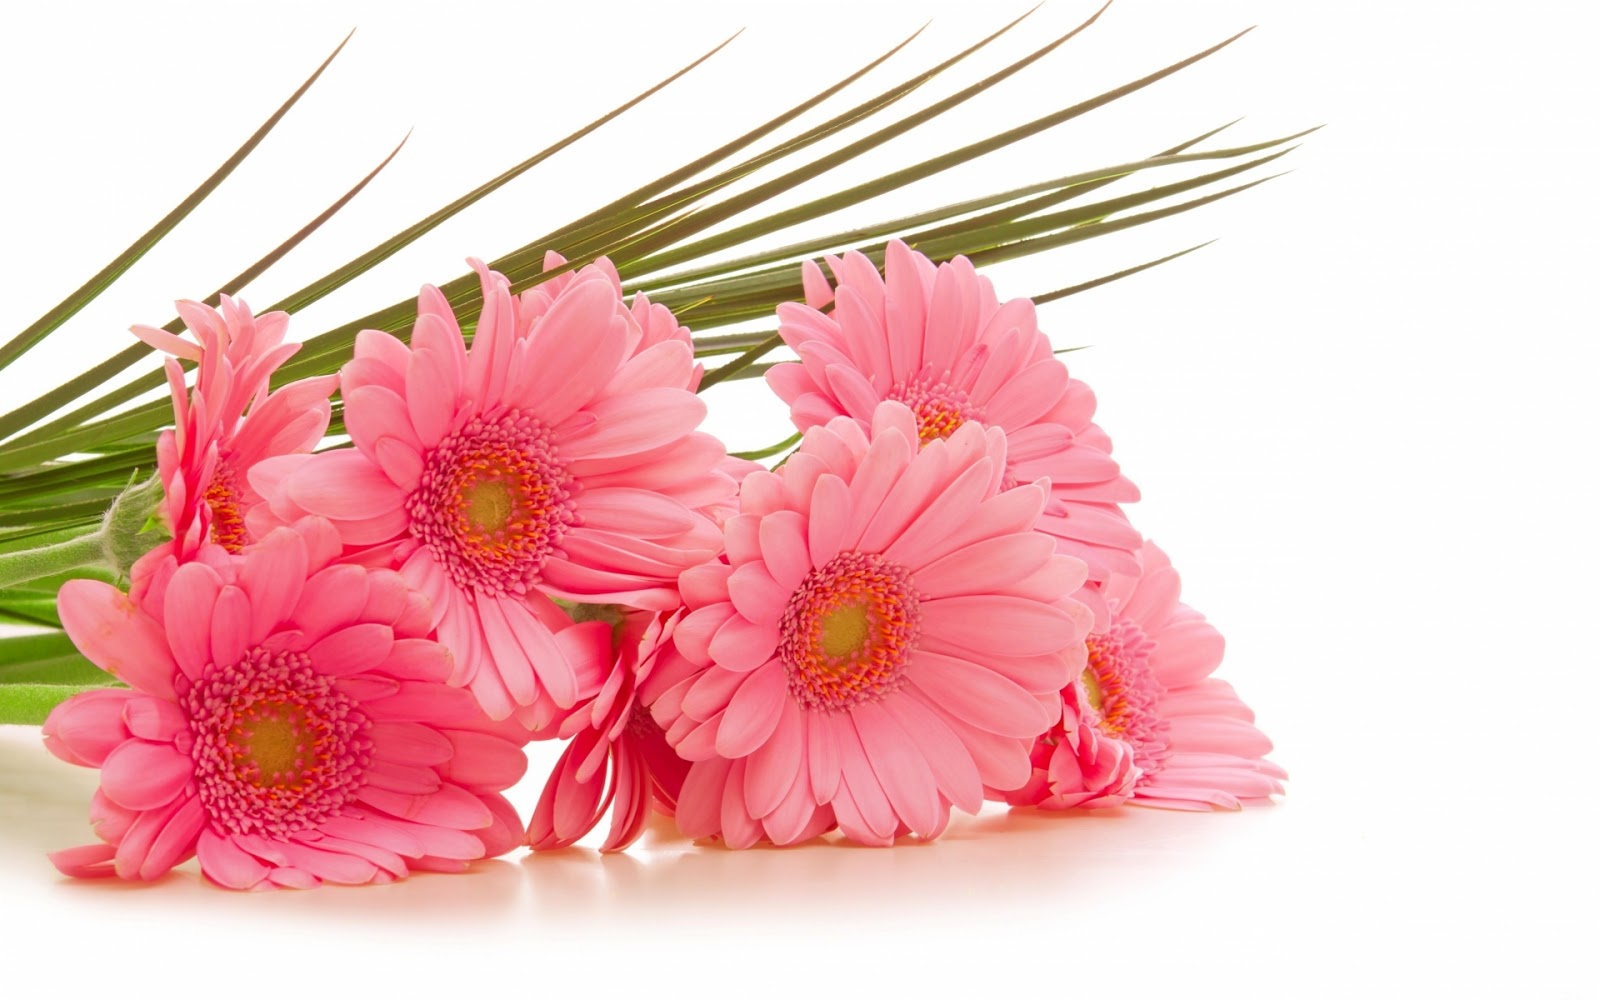 Flowers for flower lovers beautiful flowers wallpapers beautiful flowers wallpapers izmirmasajfo Image collections